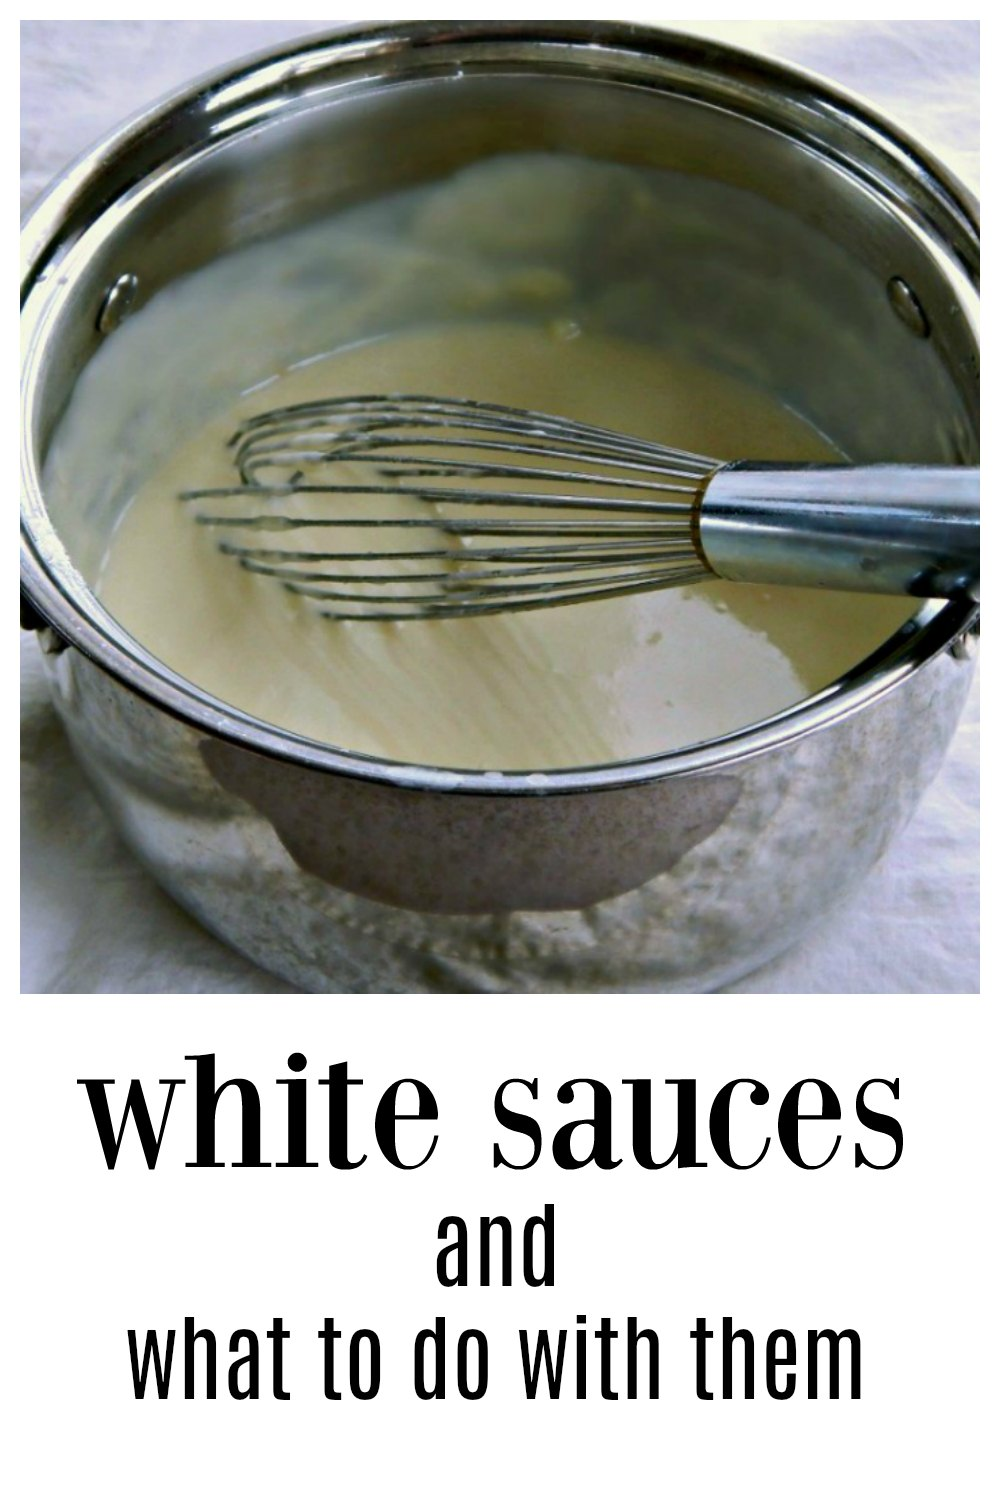 Your guide to White Sauces and What To Do With Them - How to make white sauce, troubleshooting tips and lots of examples on what to use them in. #WhiteSauce #MakingWhiteSauce